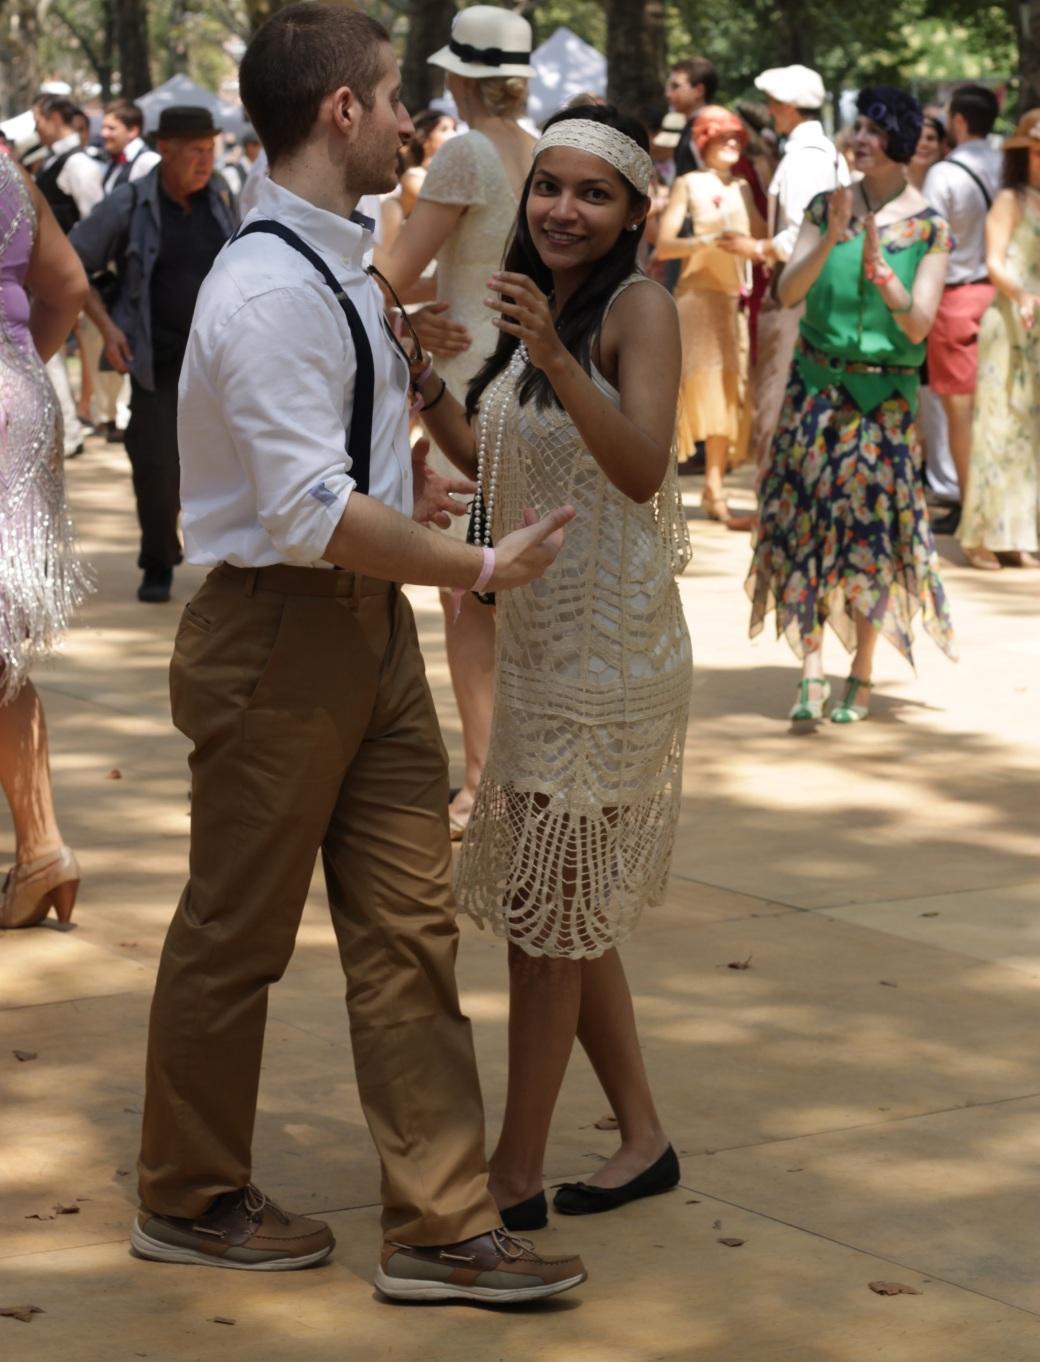 new york city governors island jazz age lawn party august 17 2014 56